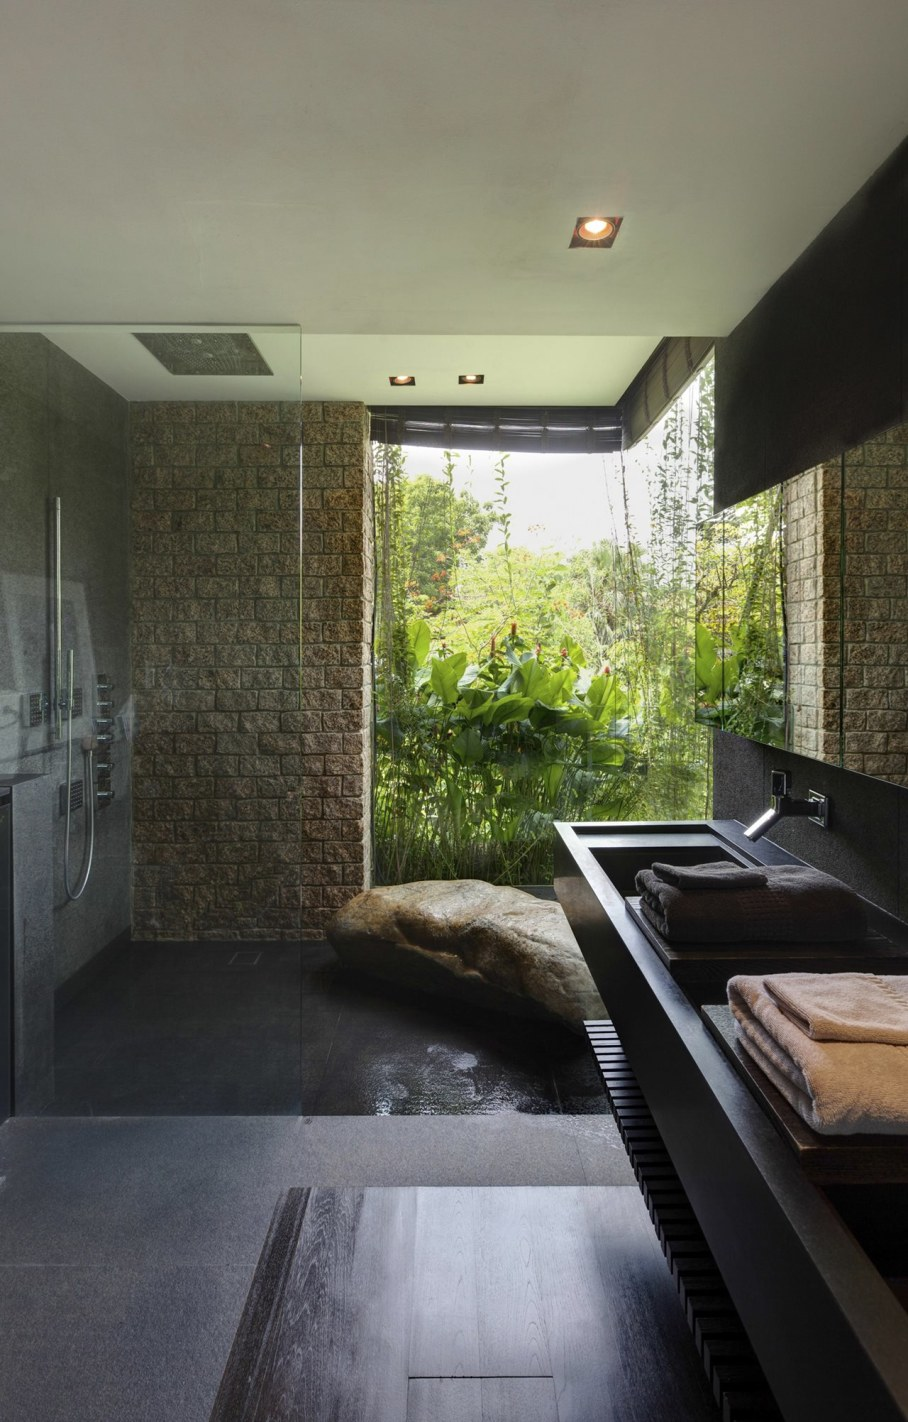 Tan's Garden Villa in Singapore - glass wall in the bathroom